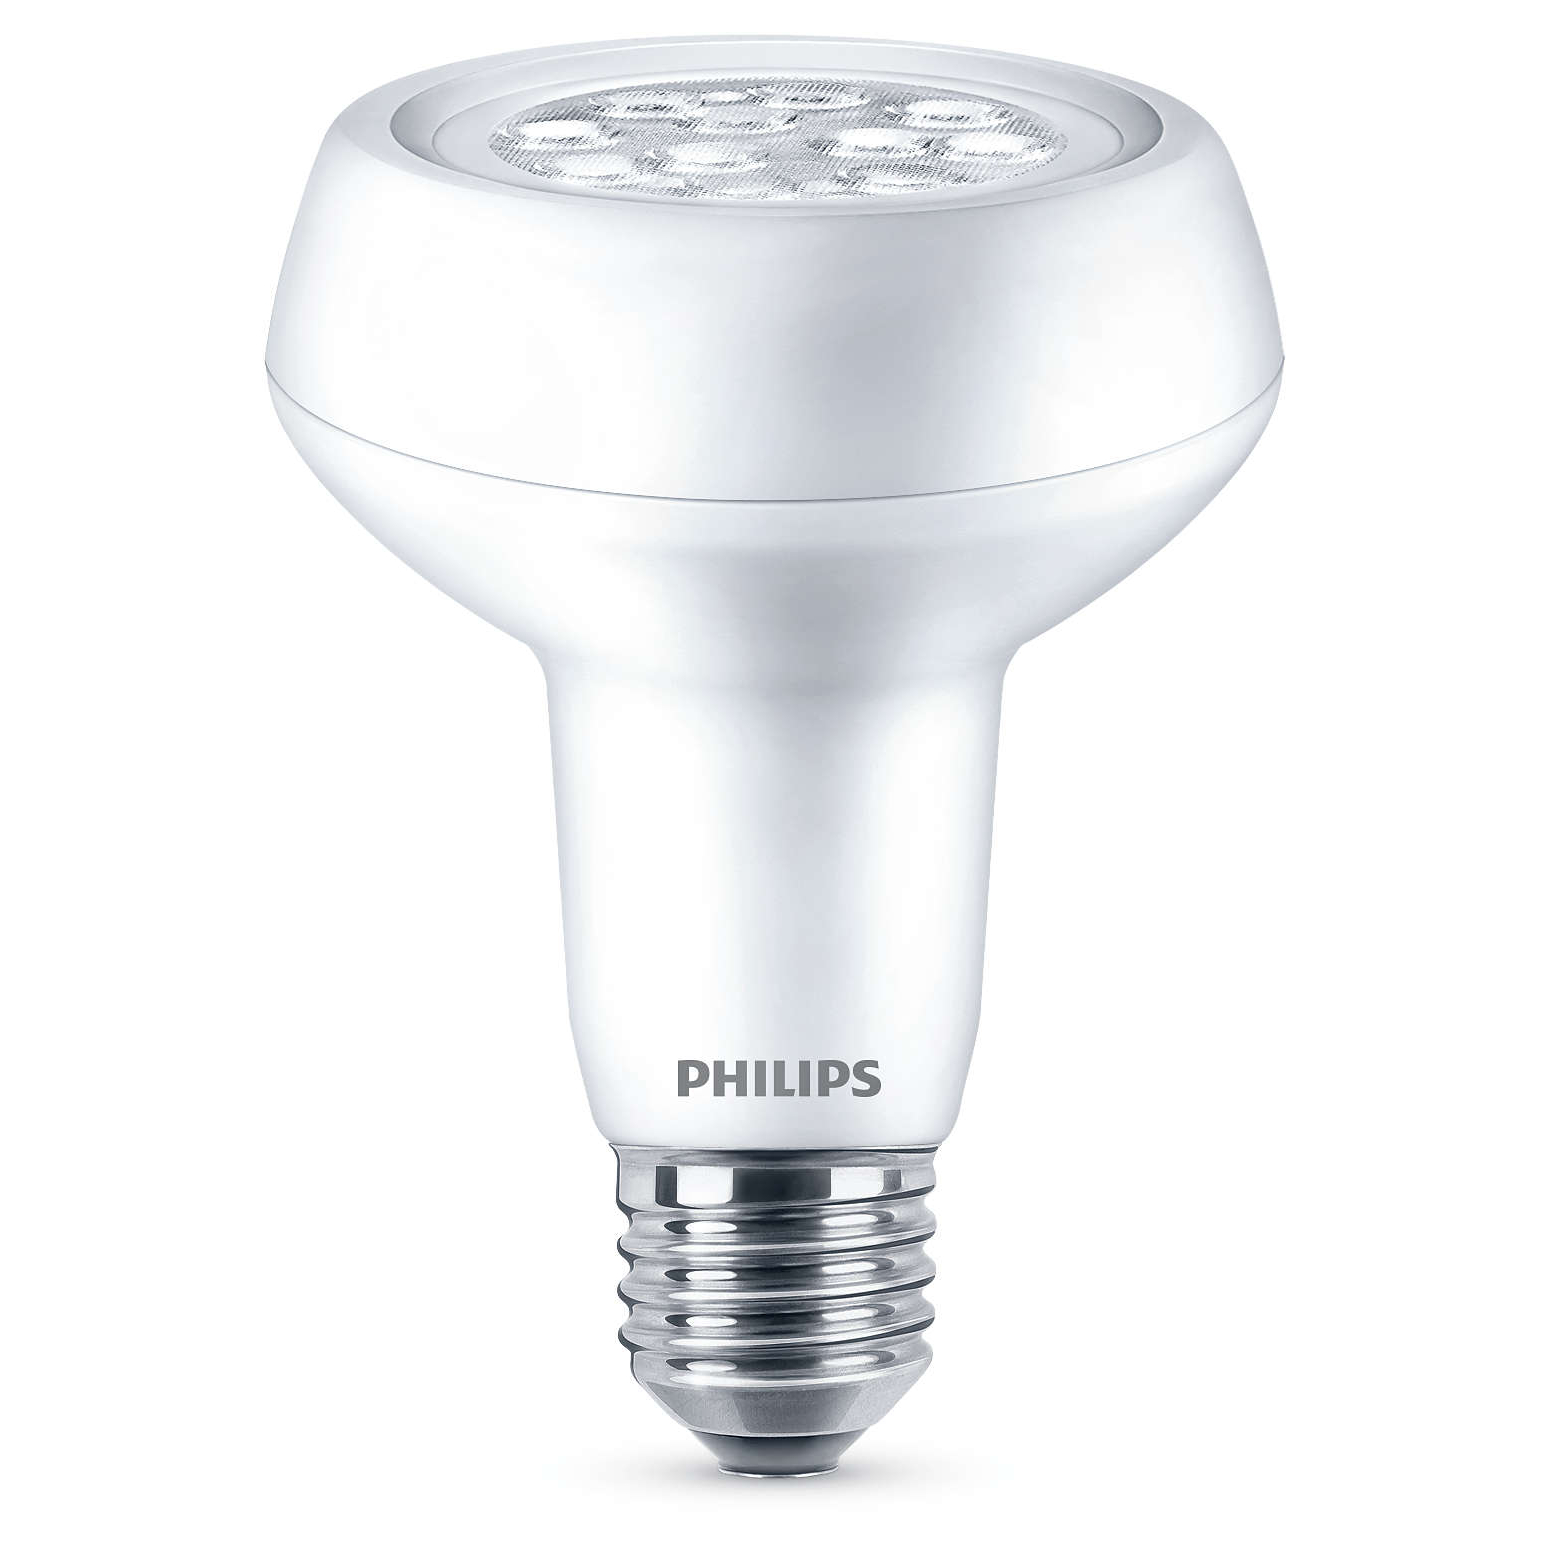 philips led r80 7 100w e27 edison reflector light bulb. Black Bedroom Furniture Sets. Home Design Ideas